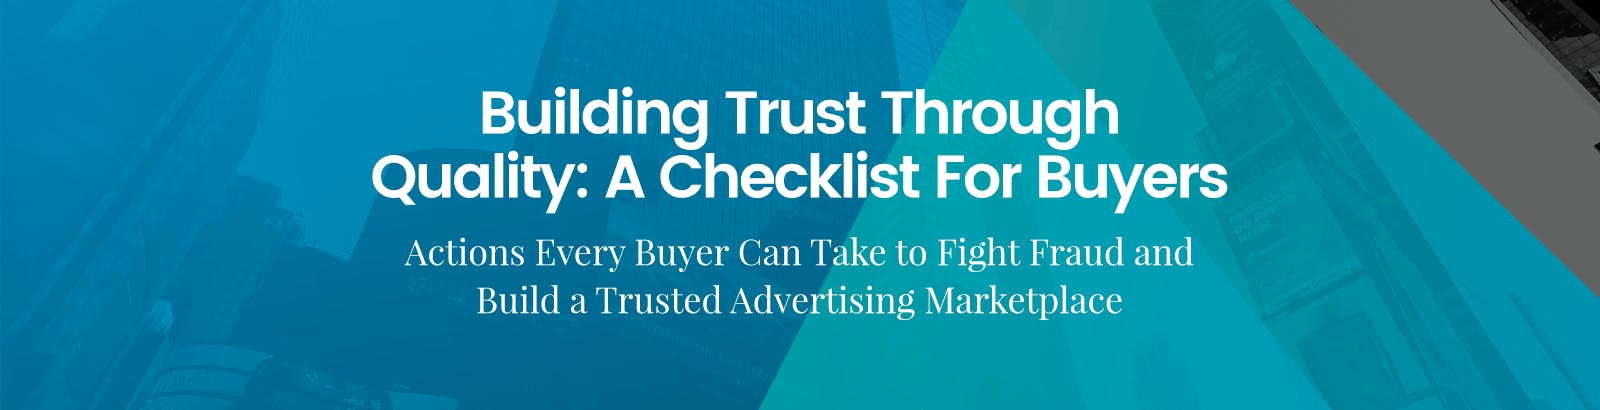 OX TrustTransparency Hero 410 1 - Building Trust Through Quality: A Checklist For Buyers